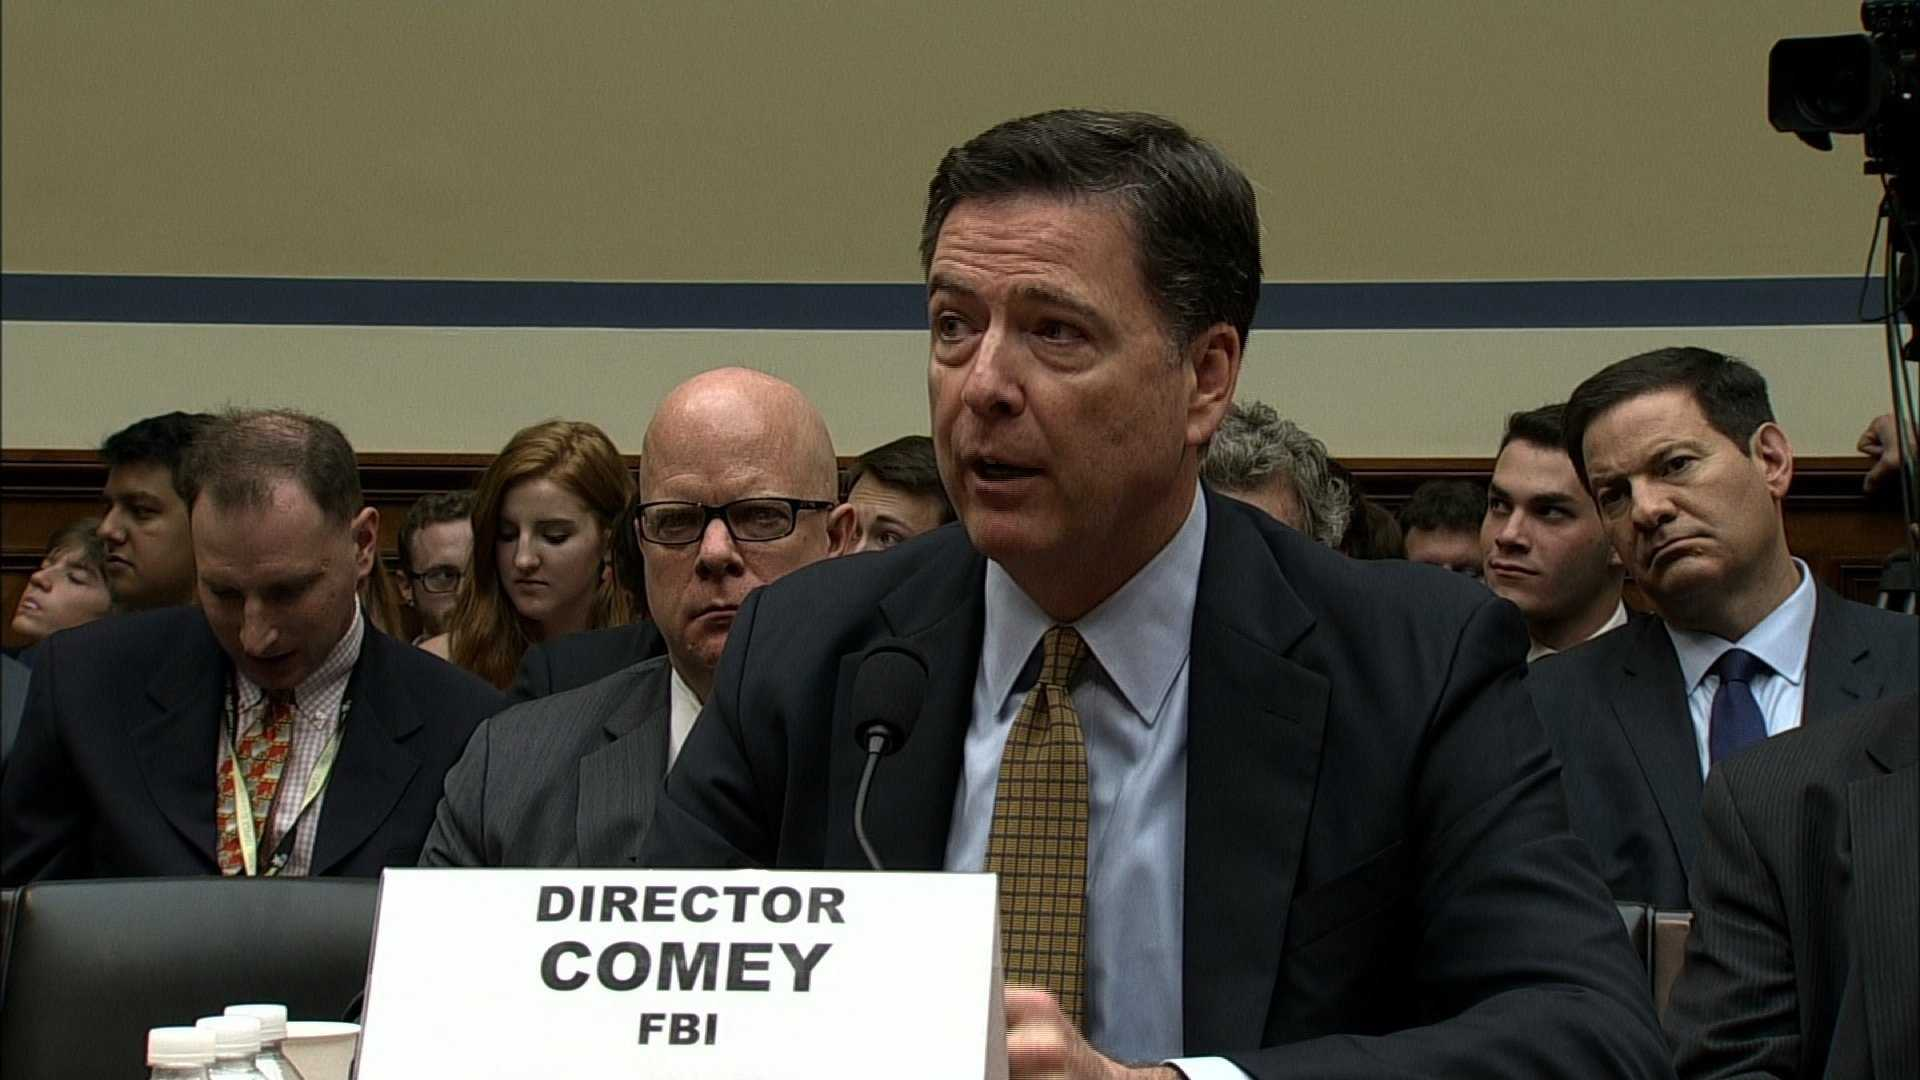 Fired FBI Director James Comey